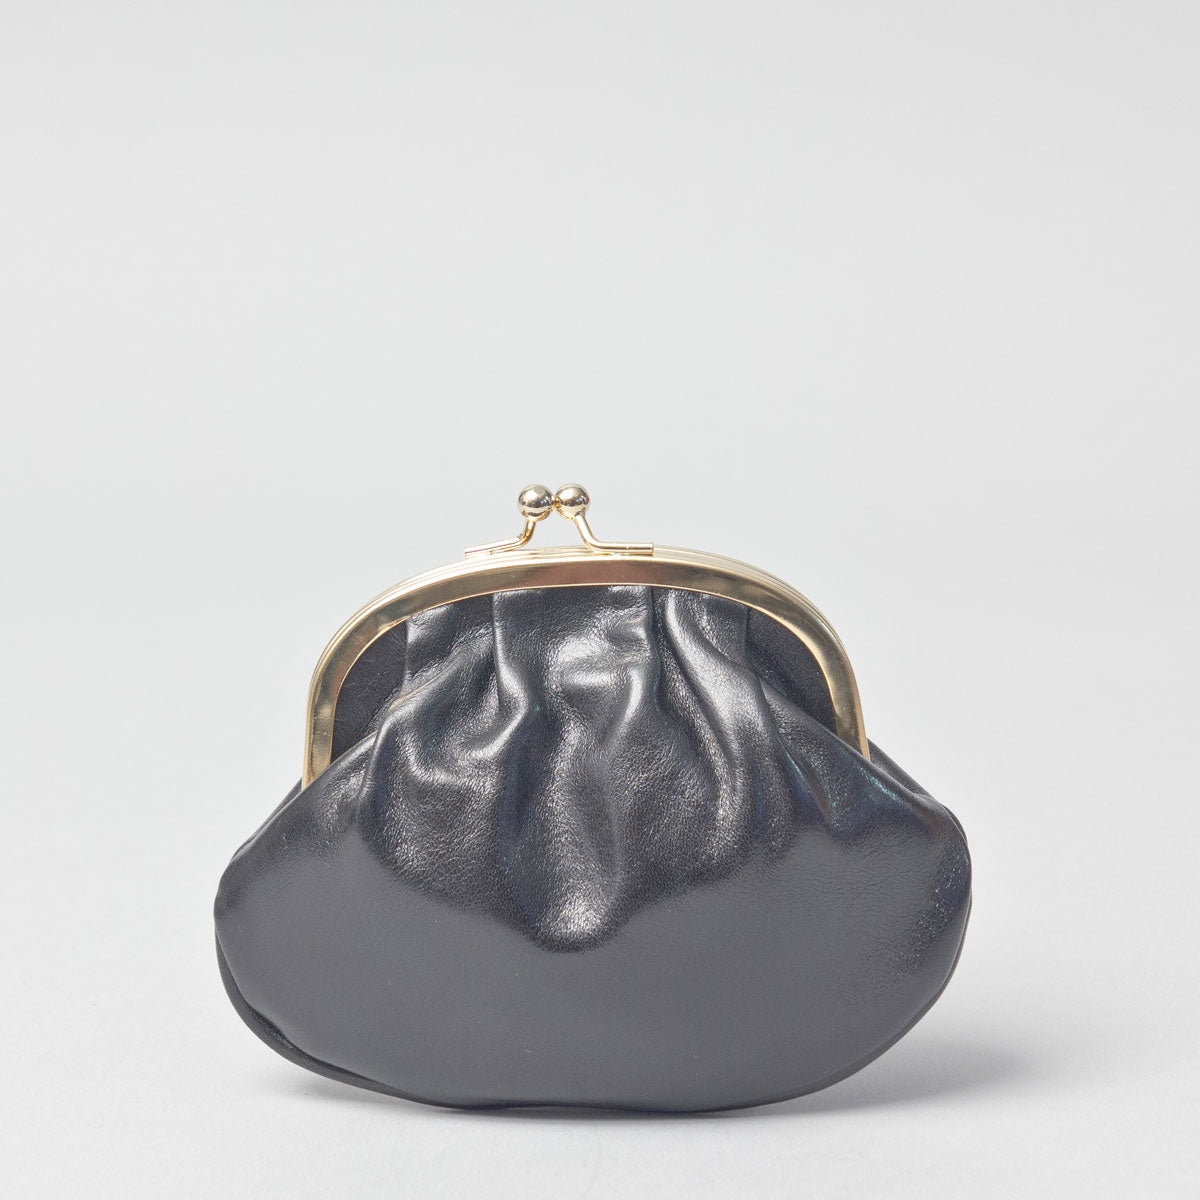 Image 1 of the 'Sabina' Black Veg-Tanned Leather Purse